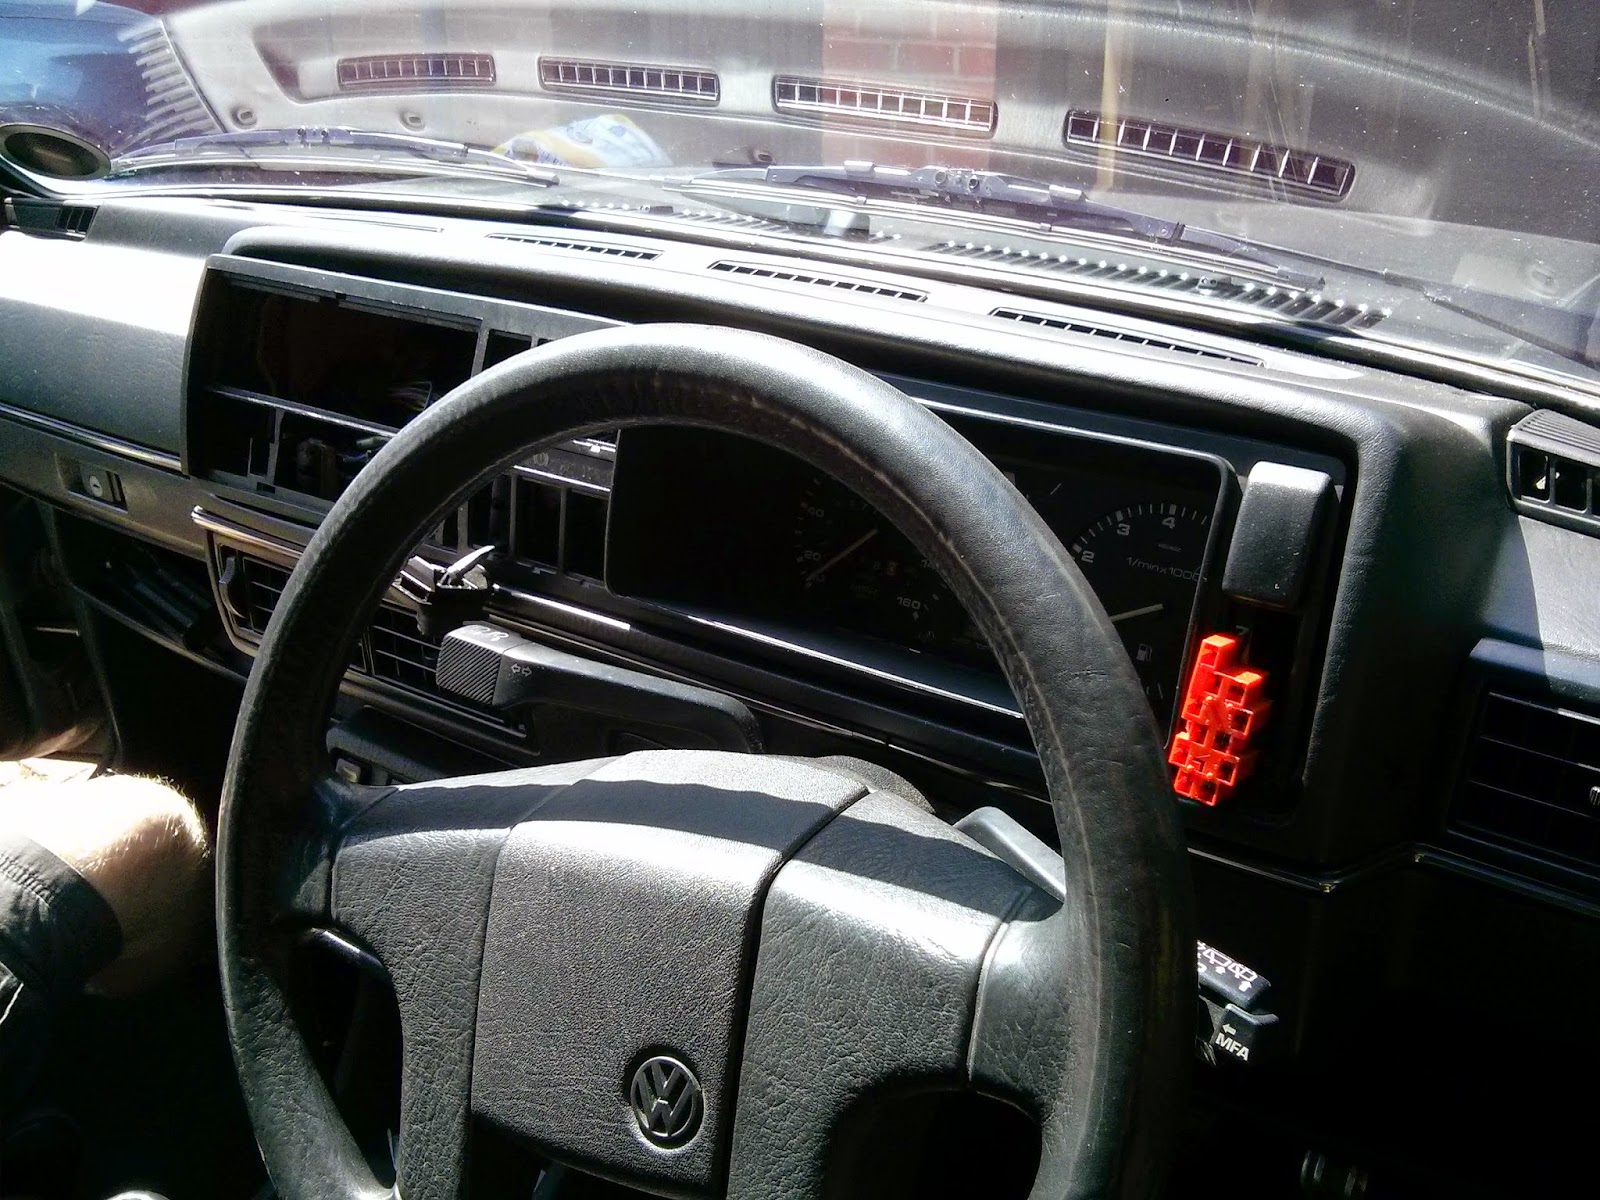 Vw Golf Mk2 Gti 16v Wiring Diagram 2007 Chevy Lifted Life With A 1989 Horn Blows